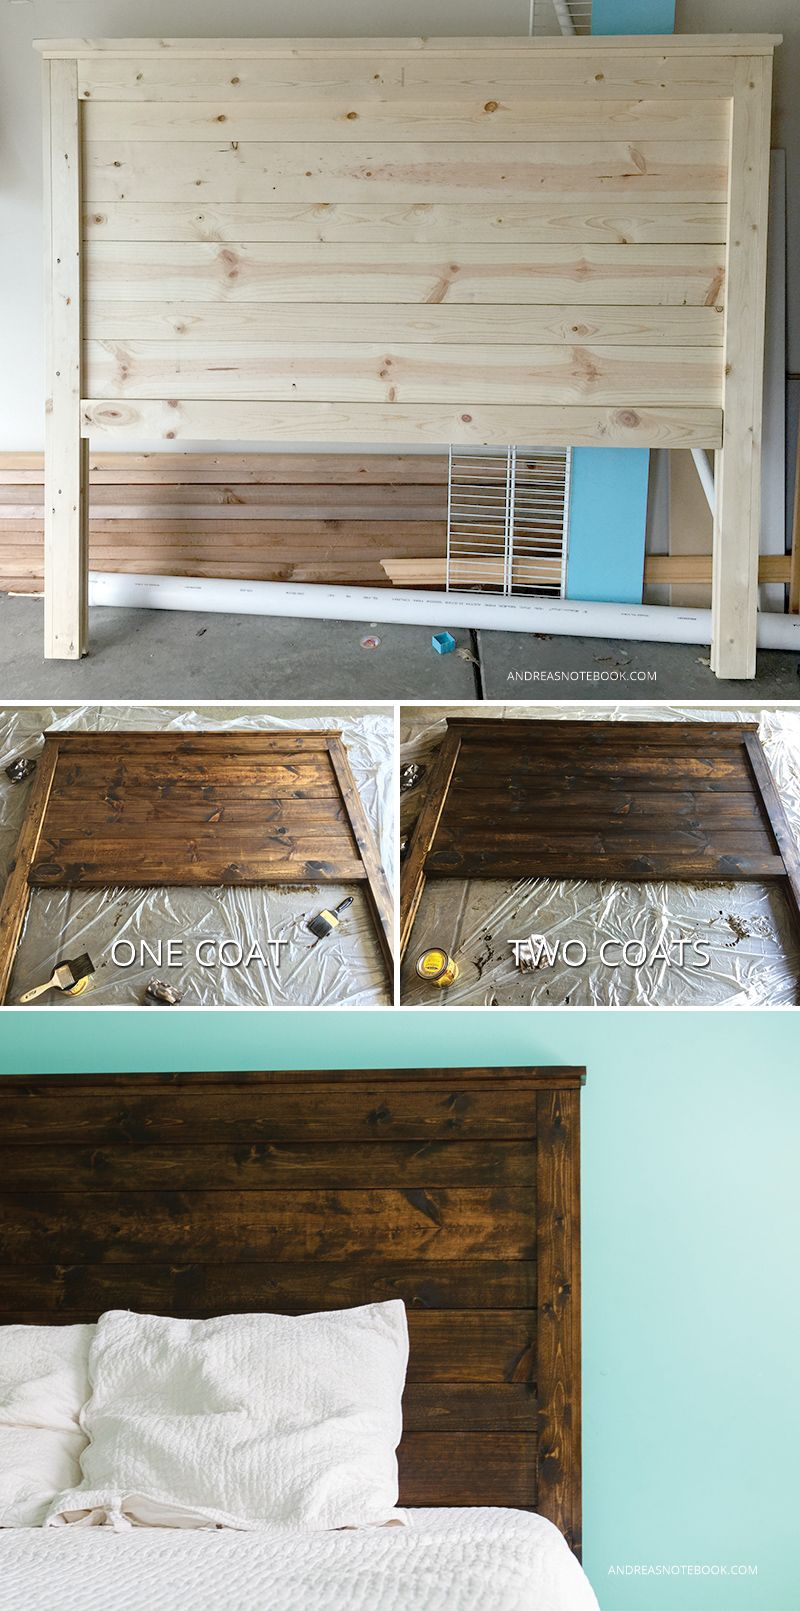 Make your own diy rustic headboard Make your own headboard